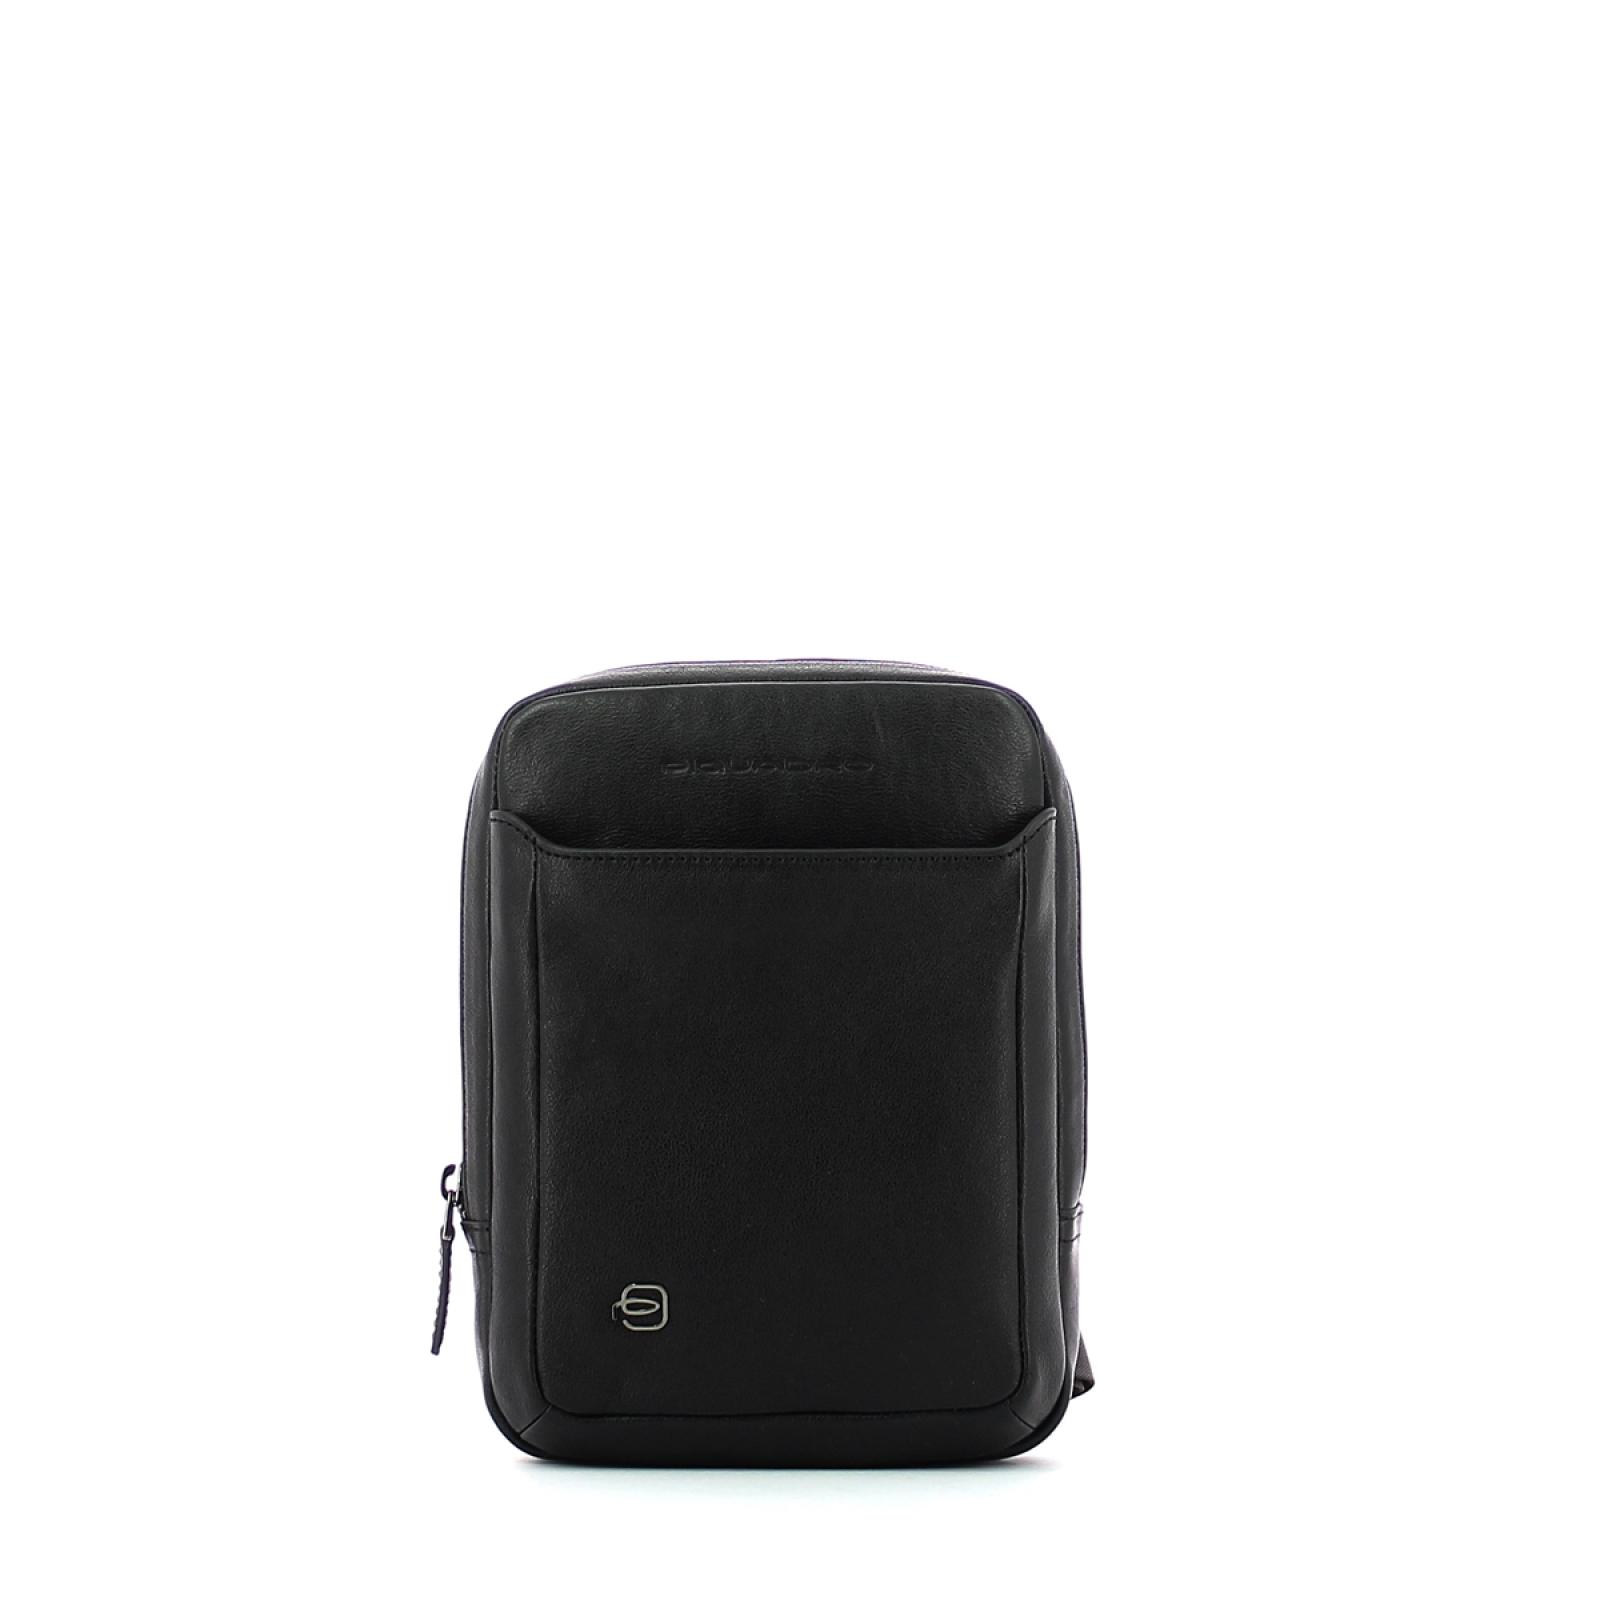 Organised Crossbody Black Square-NERO-UN